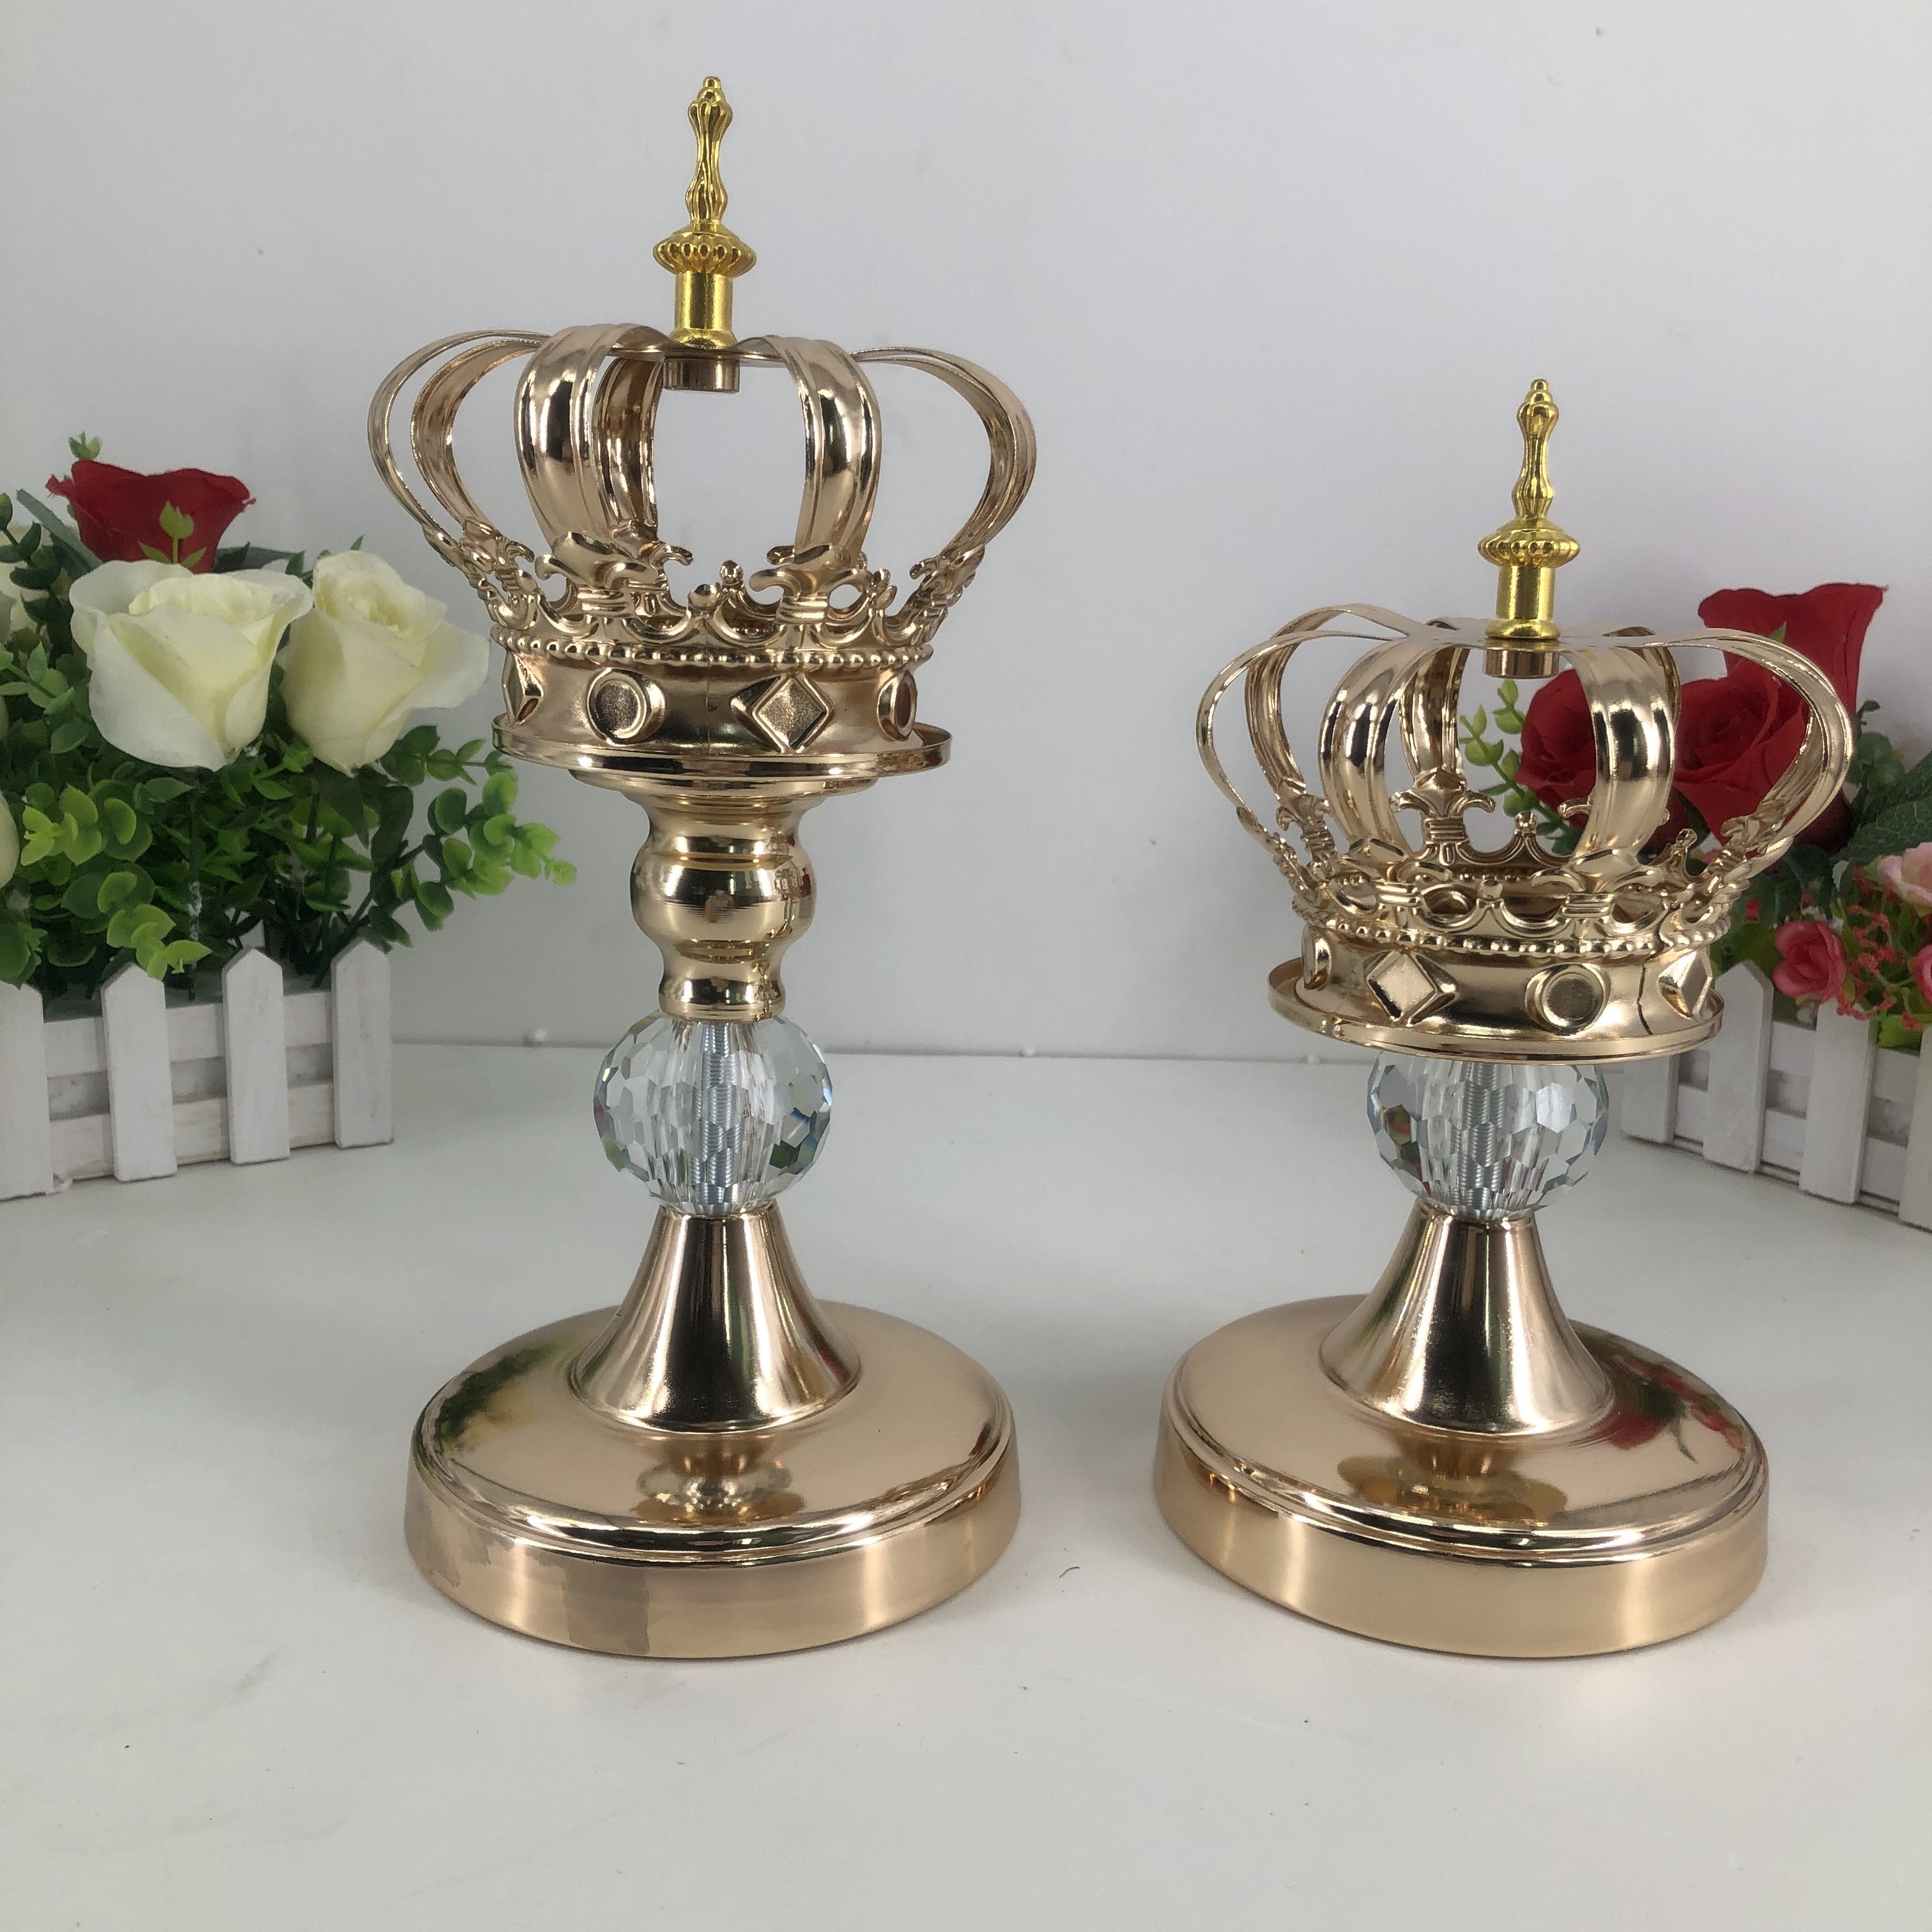 Candle Holders Gold Crown Shape Candle Stand Fashion Wedding Exquisite Candelabros Table Candlestick Party Home Decoration